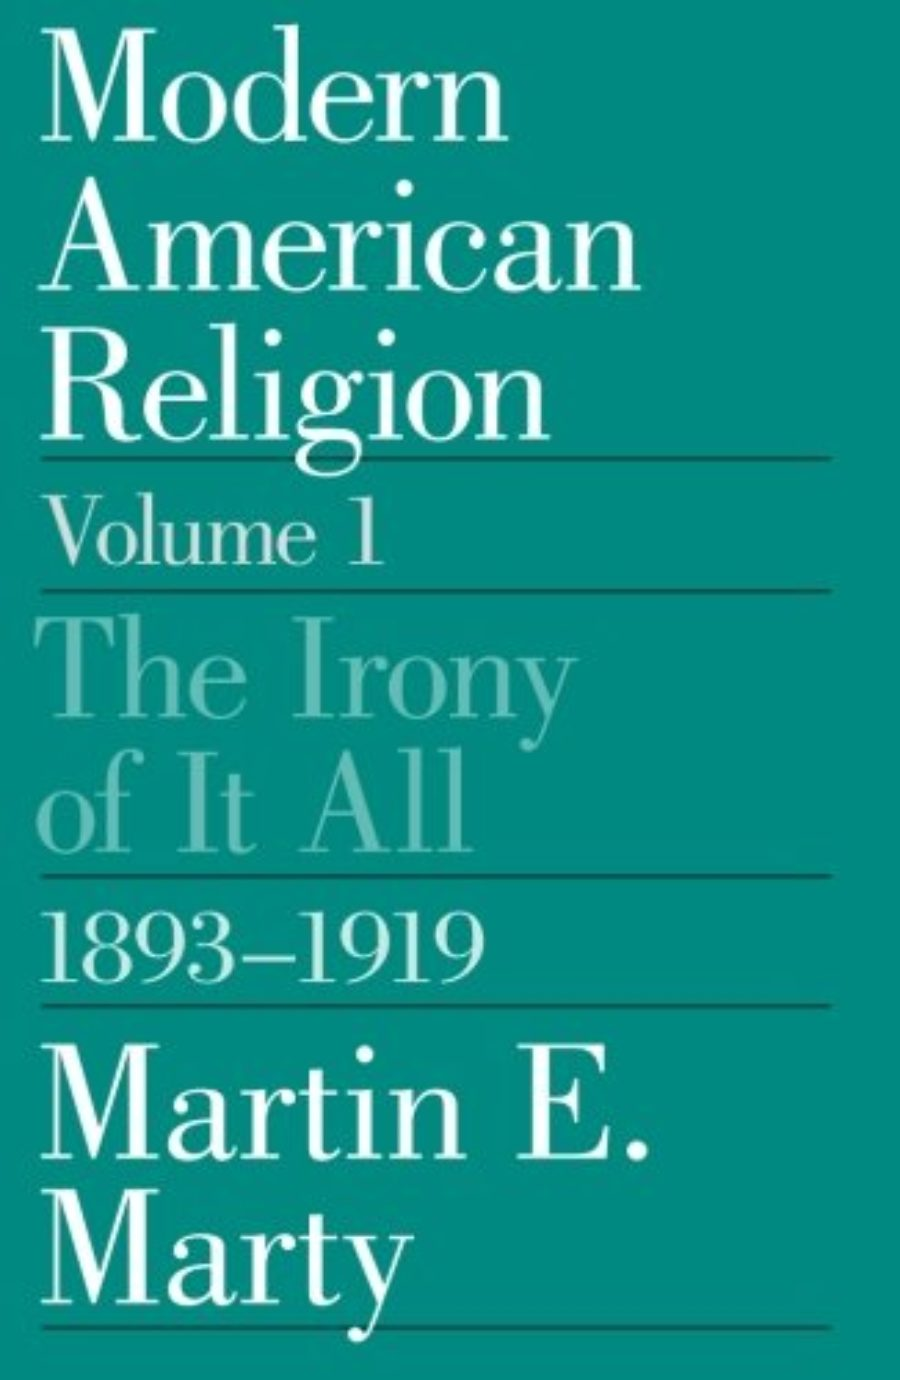 Cover of Modern American Religion, Volume 1: The Irony of It All, 1893-1919